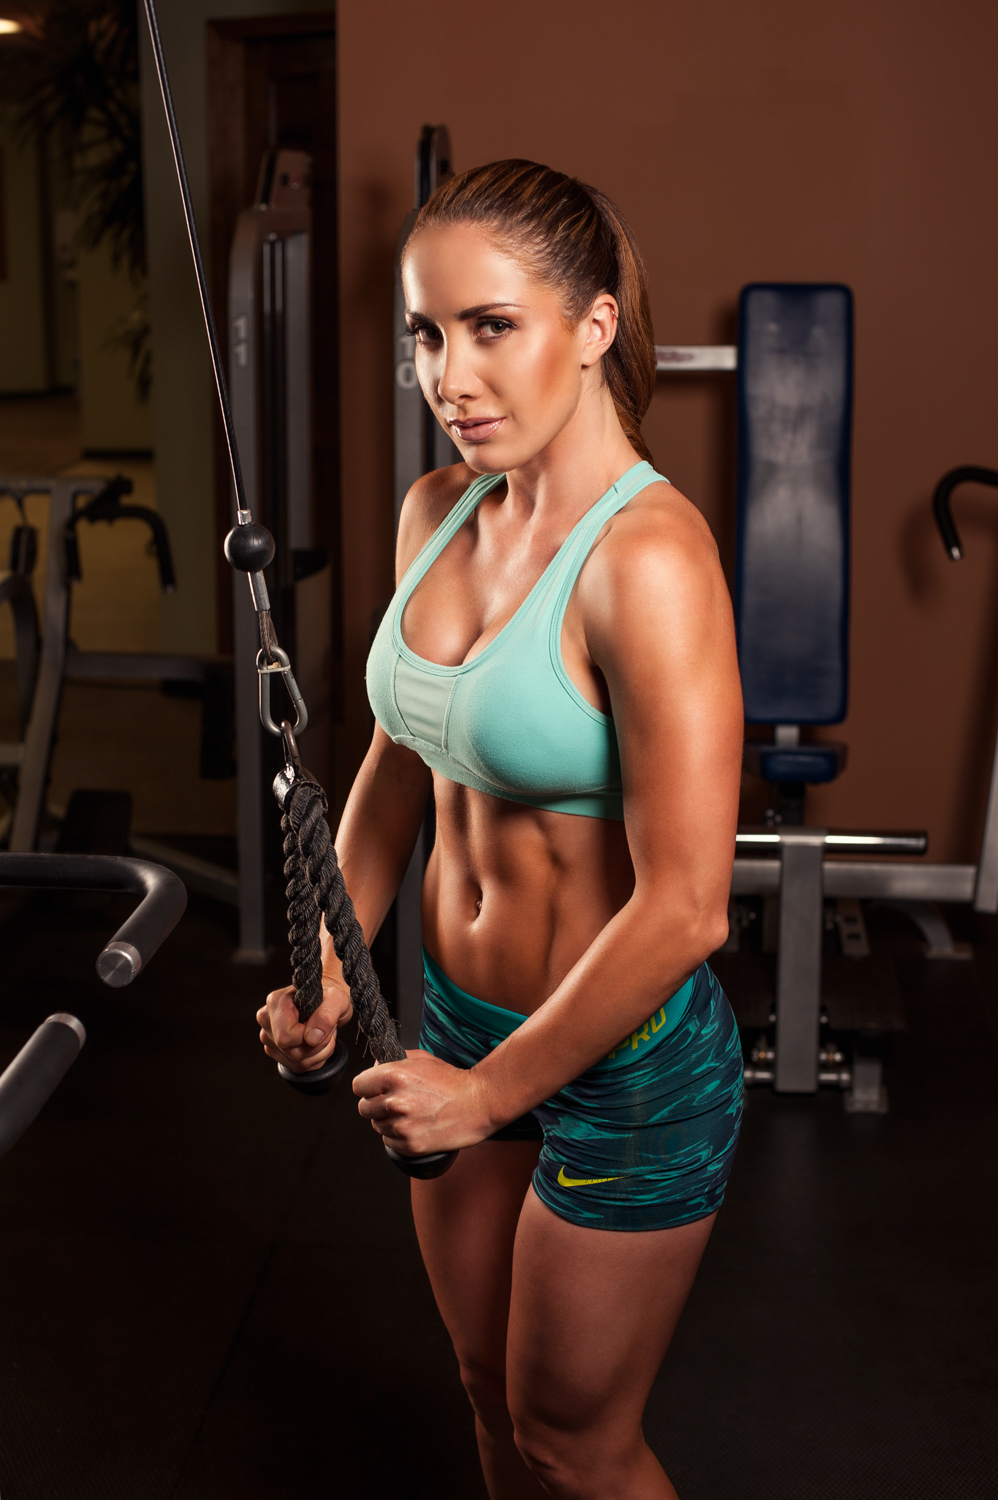 Toronto and Hamilton Fitness Bikini Photographer -Marek Michalek 001.jpg